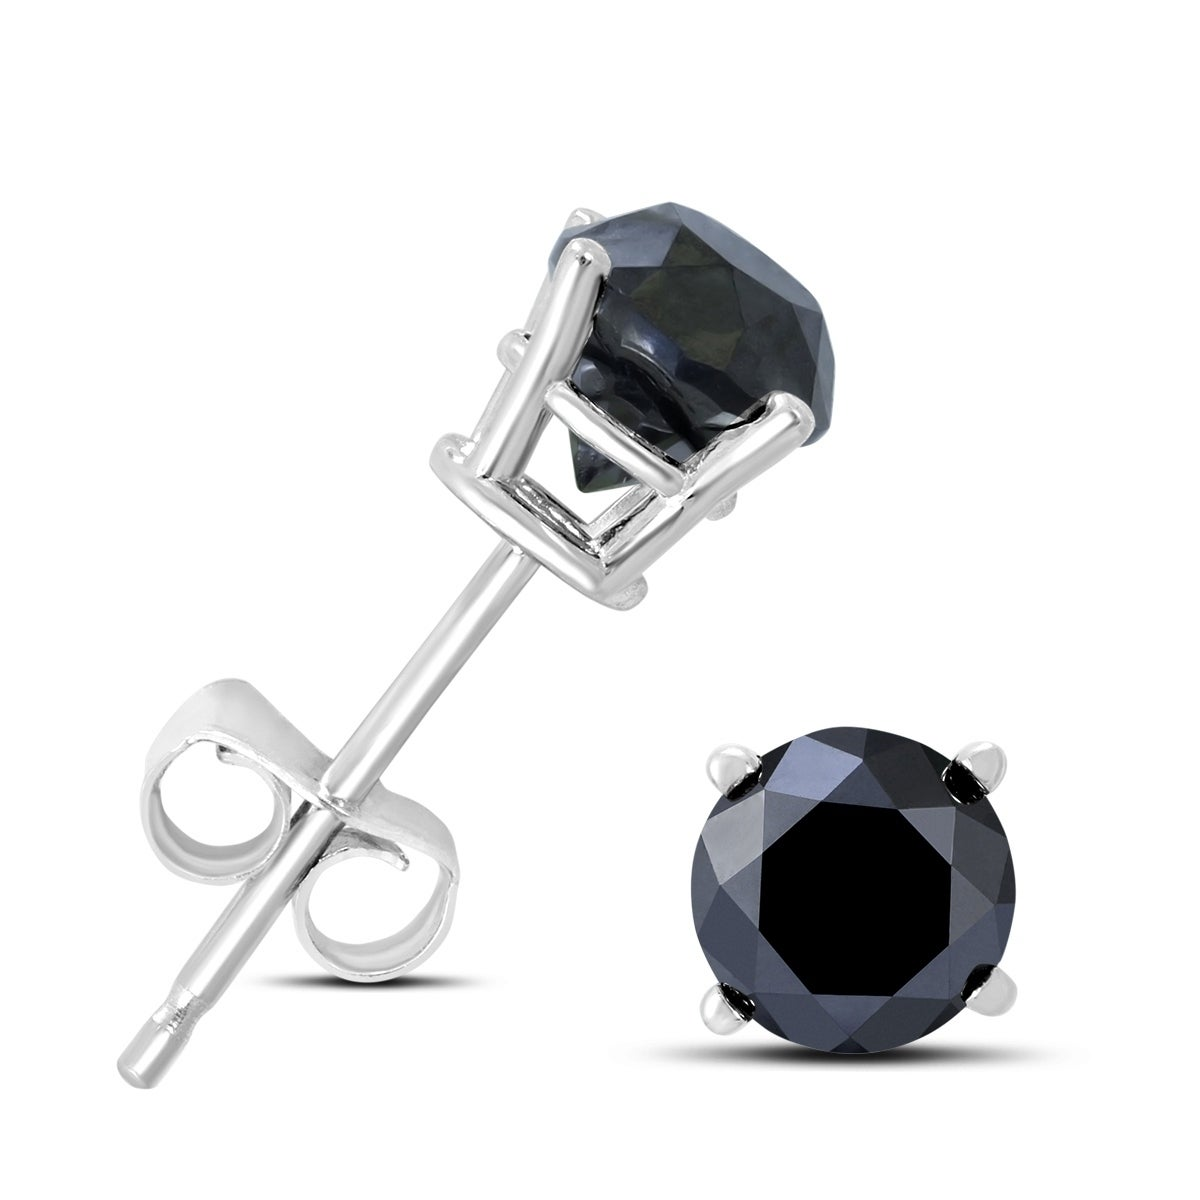 6d24a7e61 Shop 1/2 Carat TW Round Black Diamond Solitaire Stud Earrings in 10K White  Gold - On Sale - Free Shipping Today - Overstock - 22699115